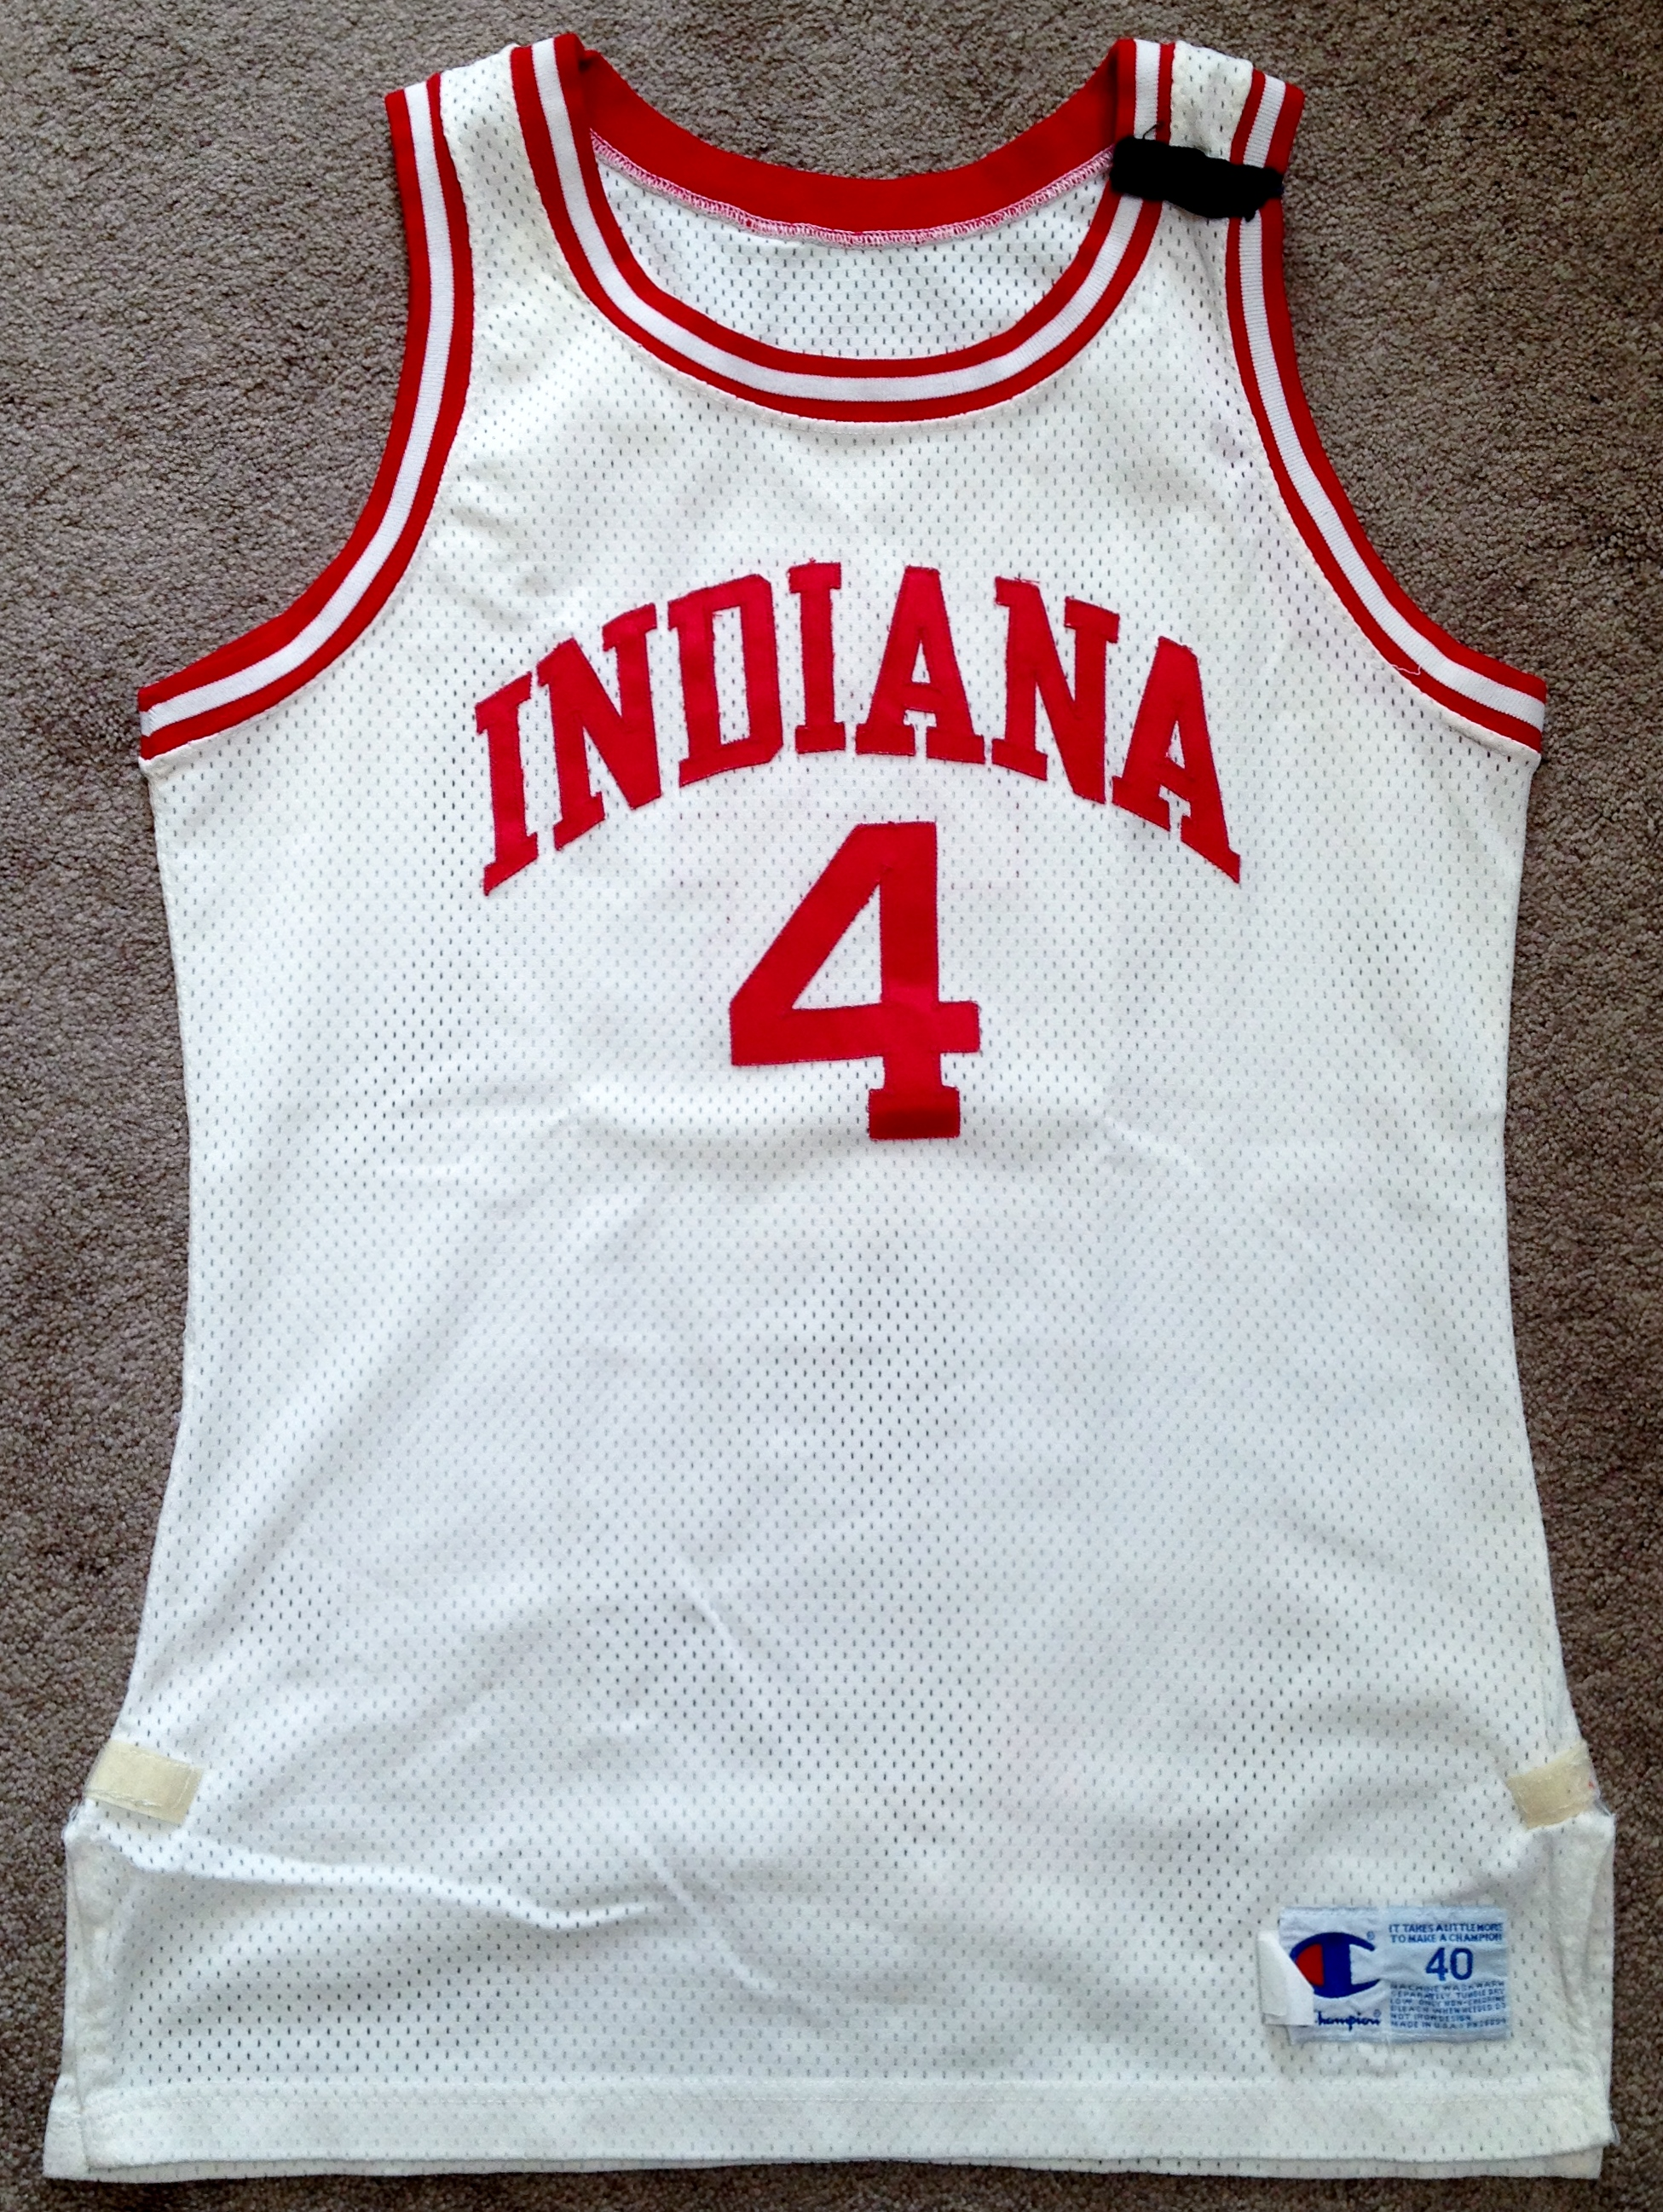 A Guide To Indiana University Game-Used Basketball Jerseys